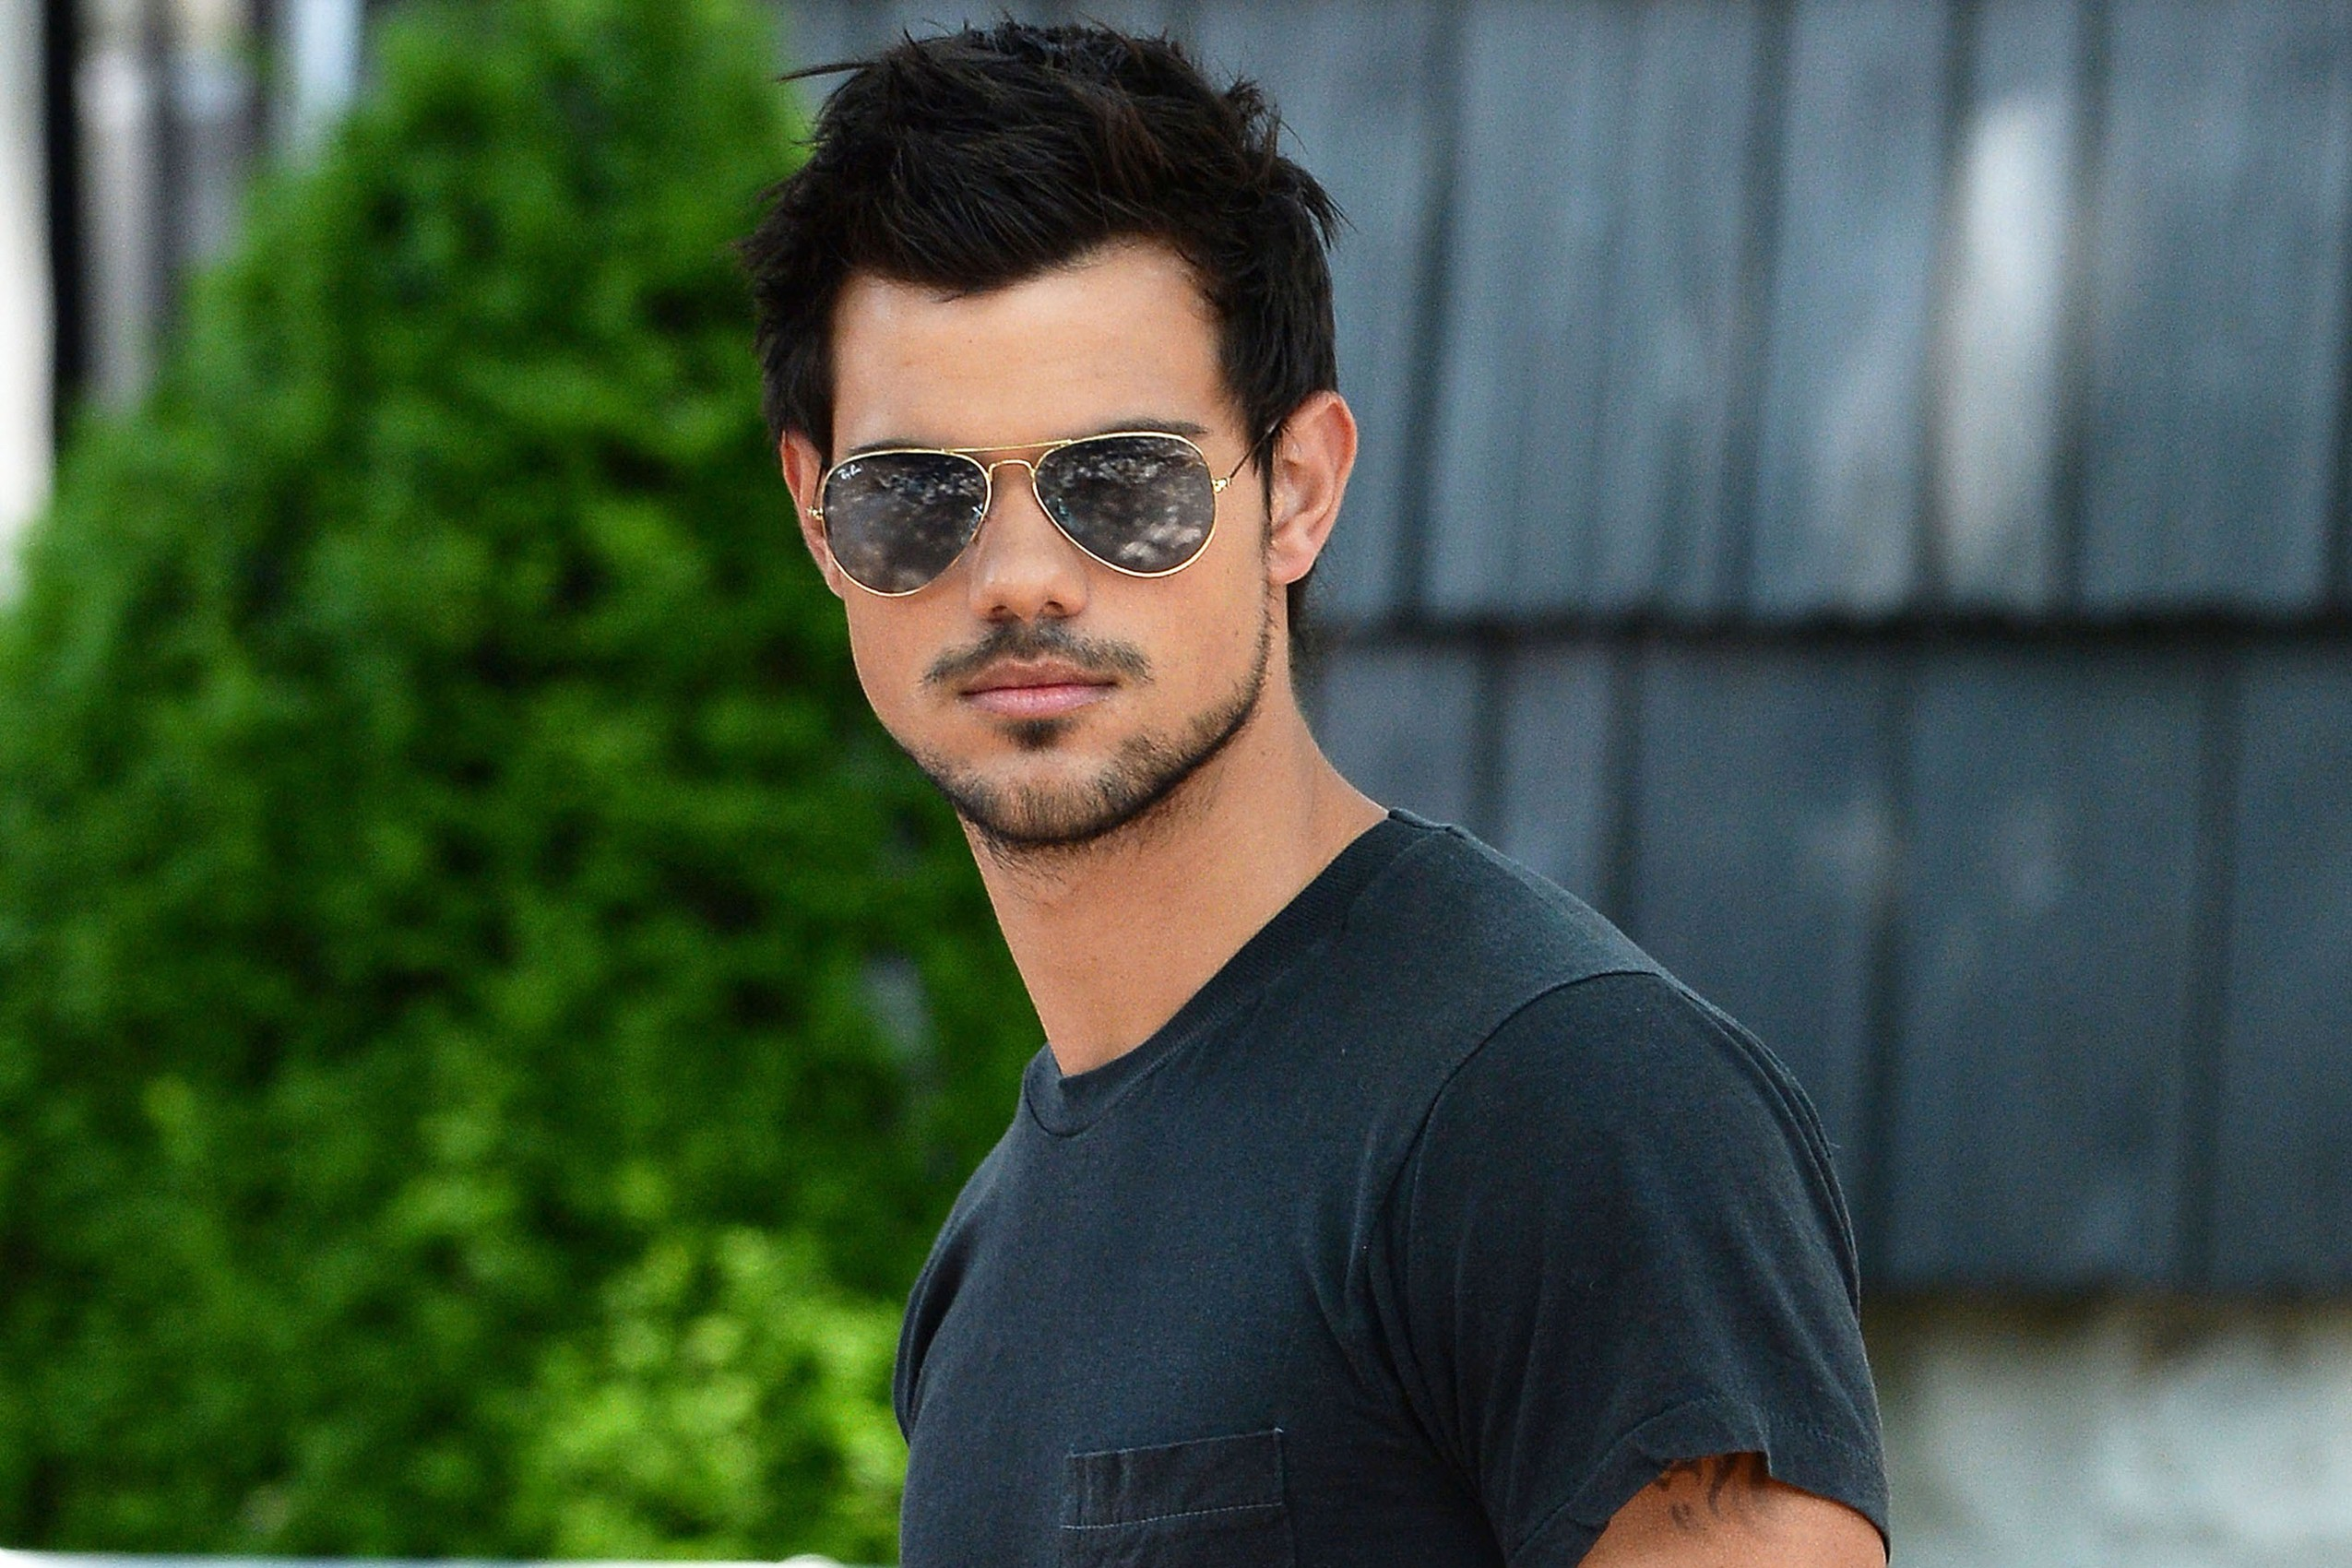 Taylor Lautner Pictures : Find best latest Taylor Lautner Pictures in HD  for your PC desktop